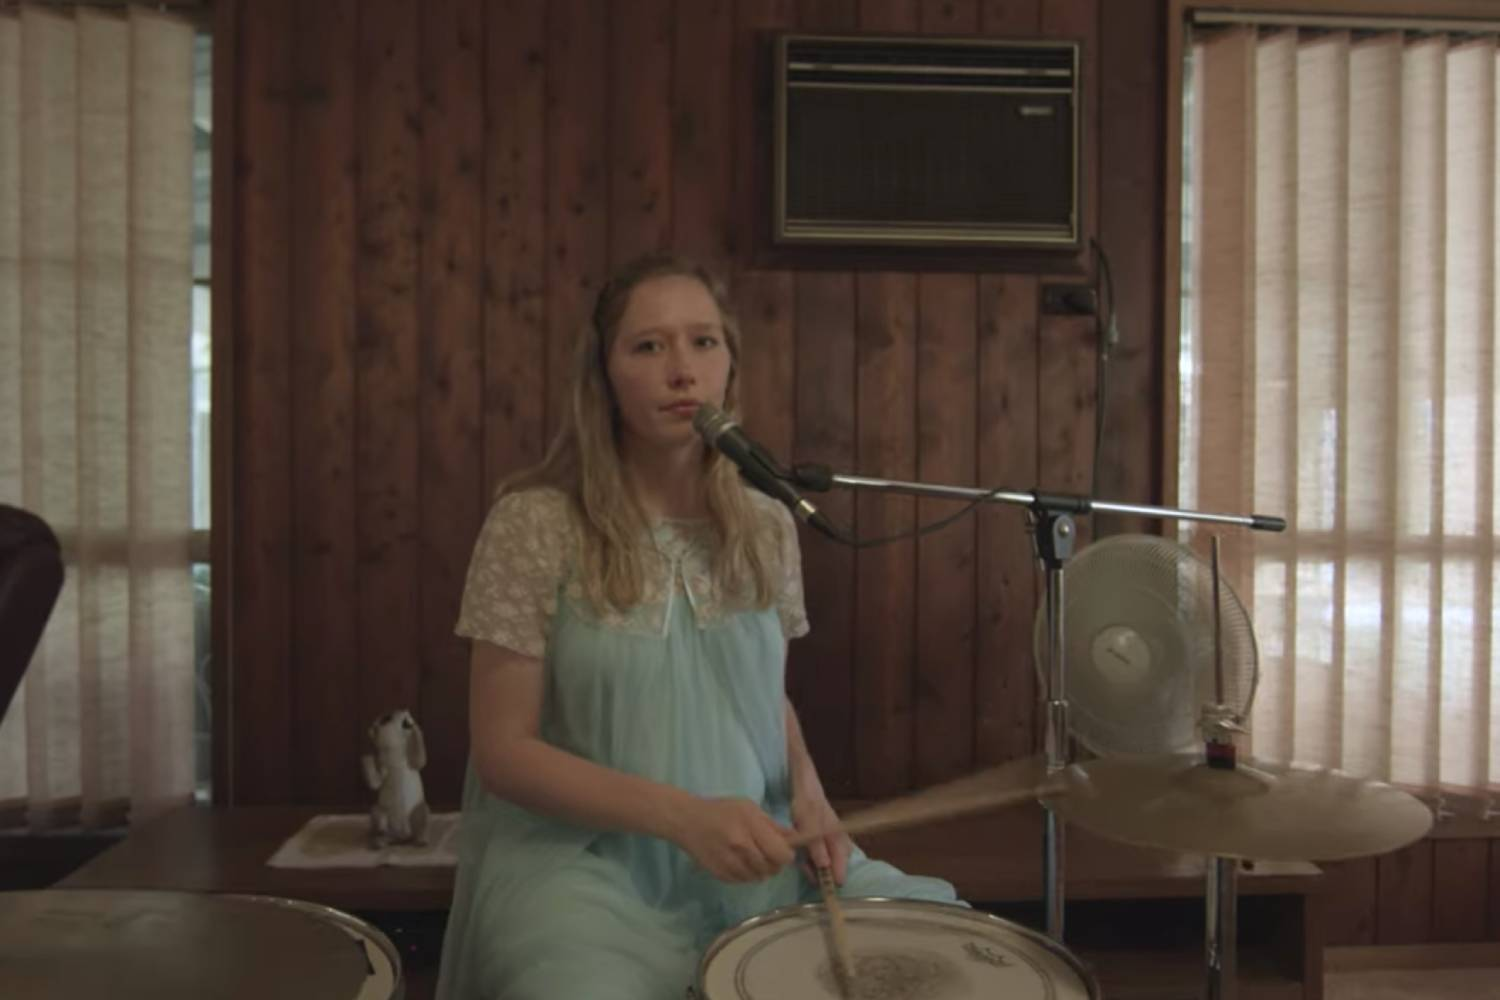 Julia Jacklin shares new track 'Pressure To Party'